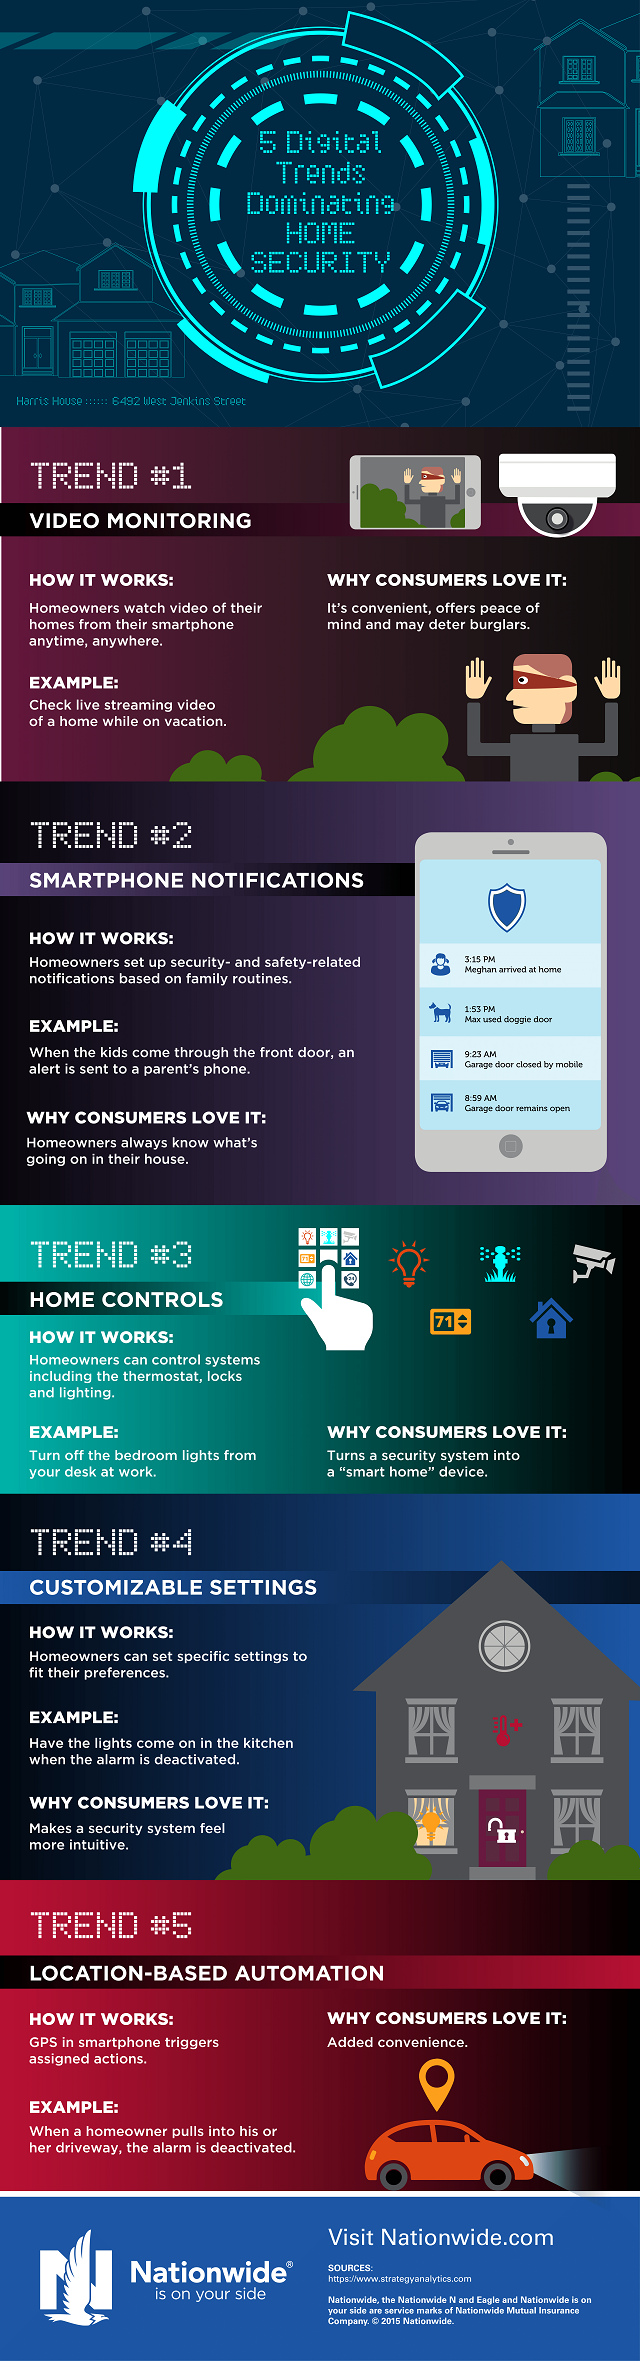 5 Digital Trends That Are Dominating Home Security [Infographic]